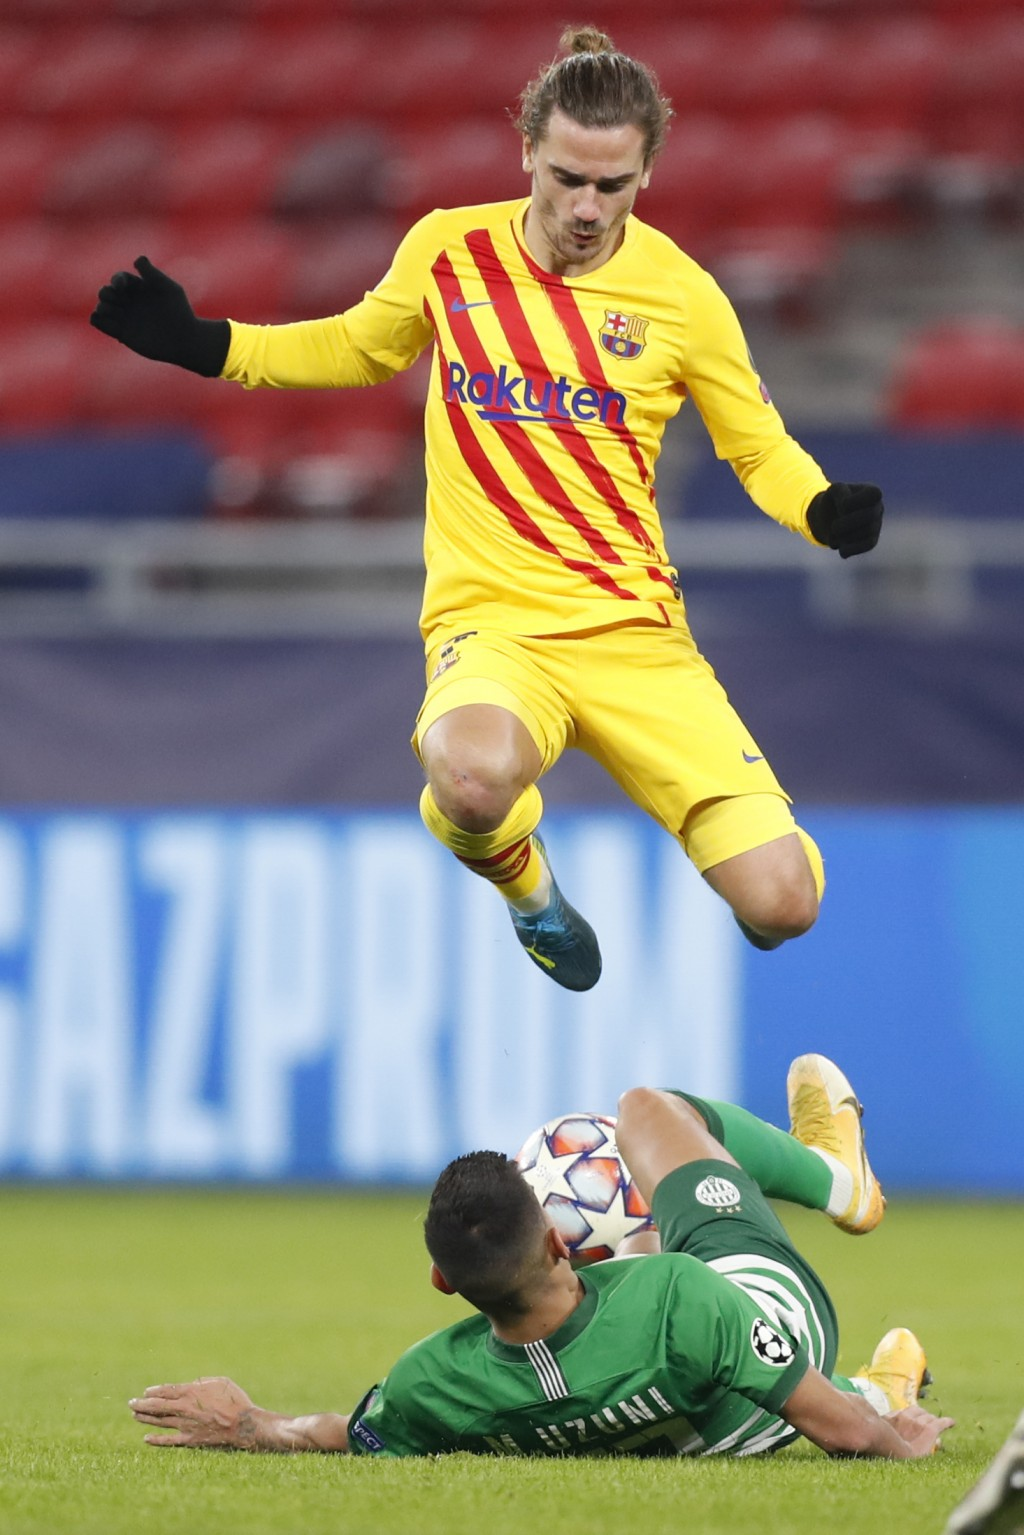 Barcelona's Antoine Griezmann is tackled by Ferencvaros' Myrto Uzuni during the Champions League group G soccer match between Ferencvaros and Barcelon...